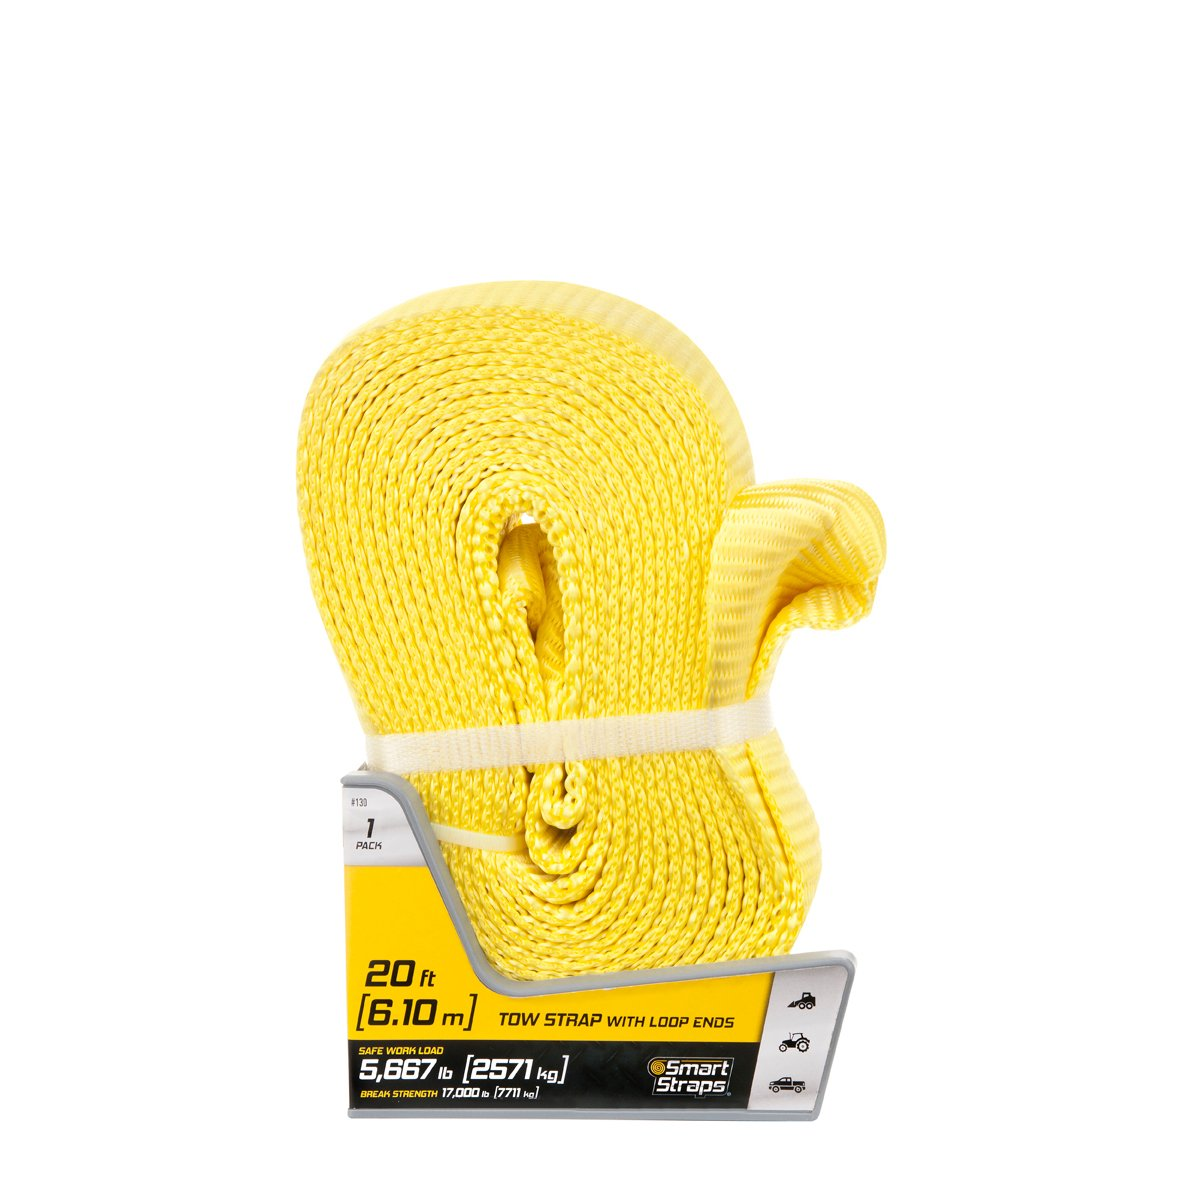 Commercial and Recreational Use 5,660lb Safe Work Load Ideal for Home SmartStraps 20/' Tow Strap with Loop Ends Yellow Auto 17,000lb Break Strength Recover Stuck Vehicles and Small Machinery